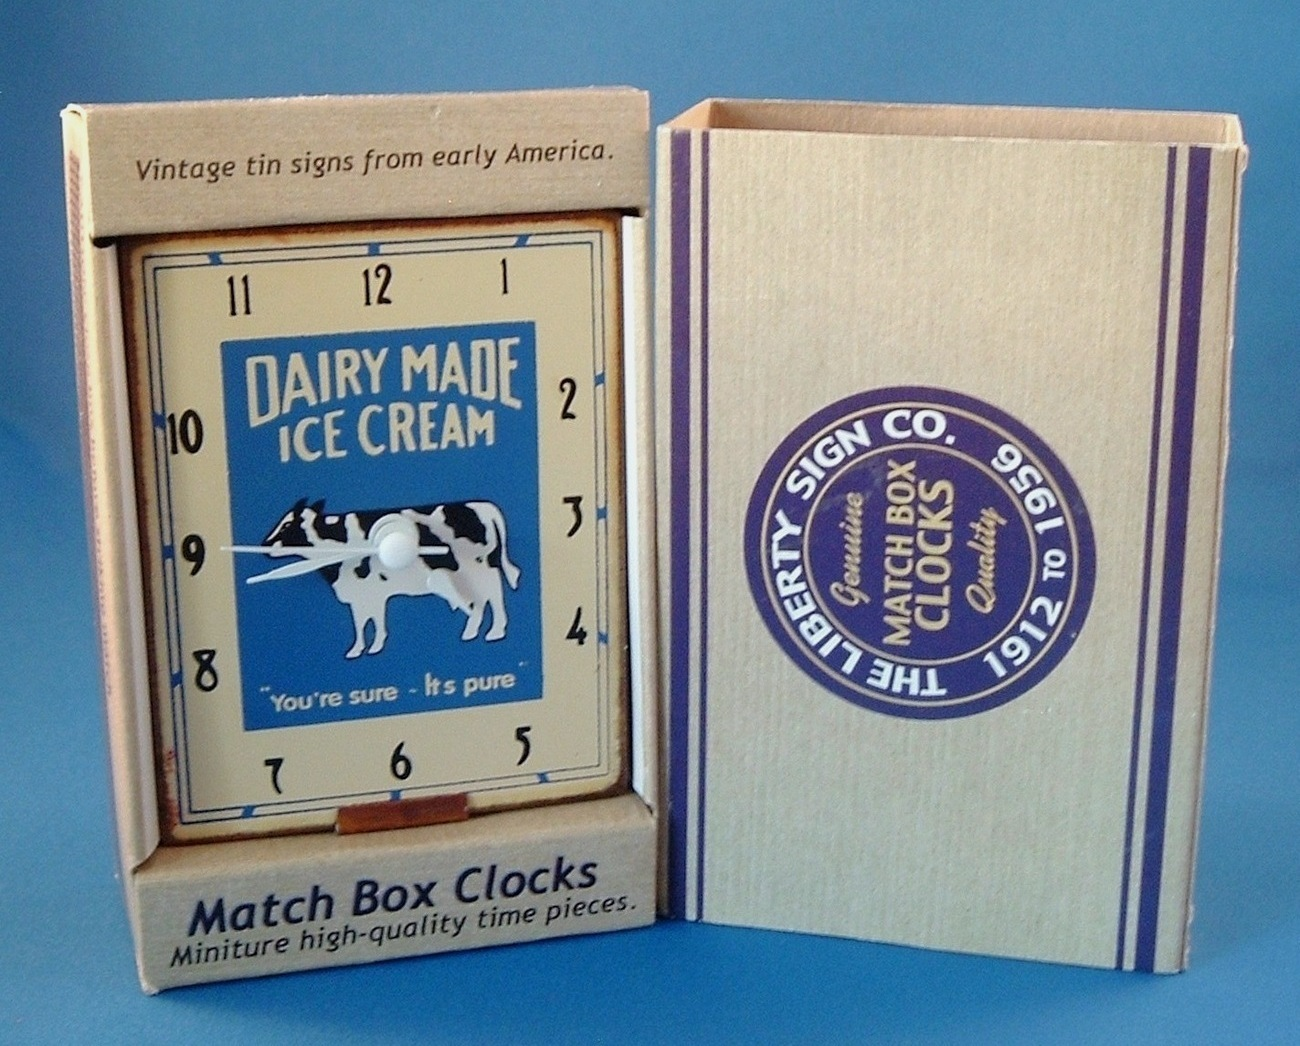 Match Box Miniature Clock Dairy Made Ice Cream Cow Hand Made